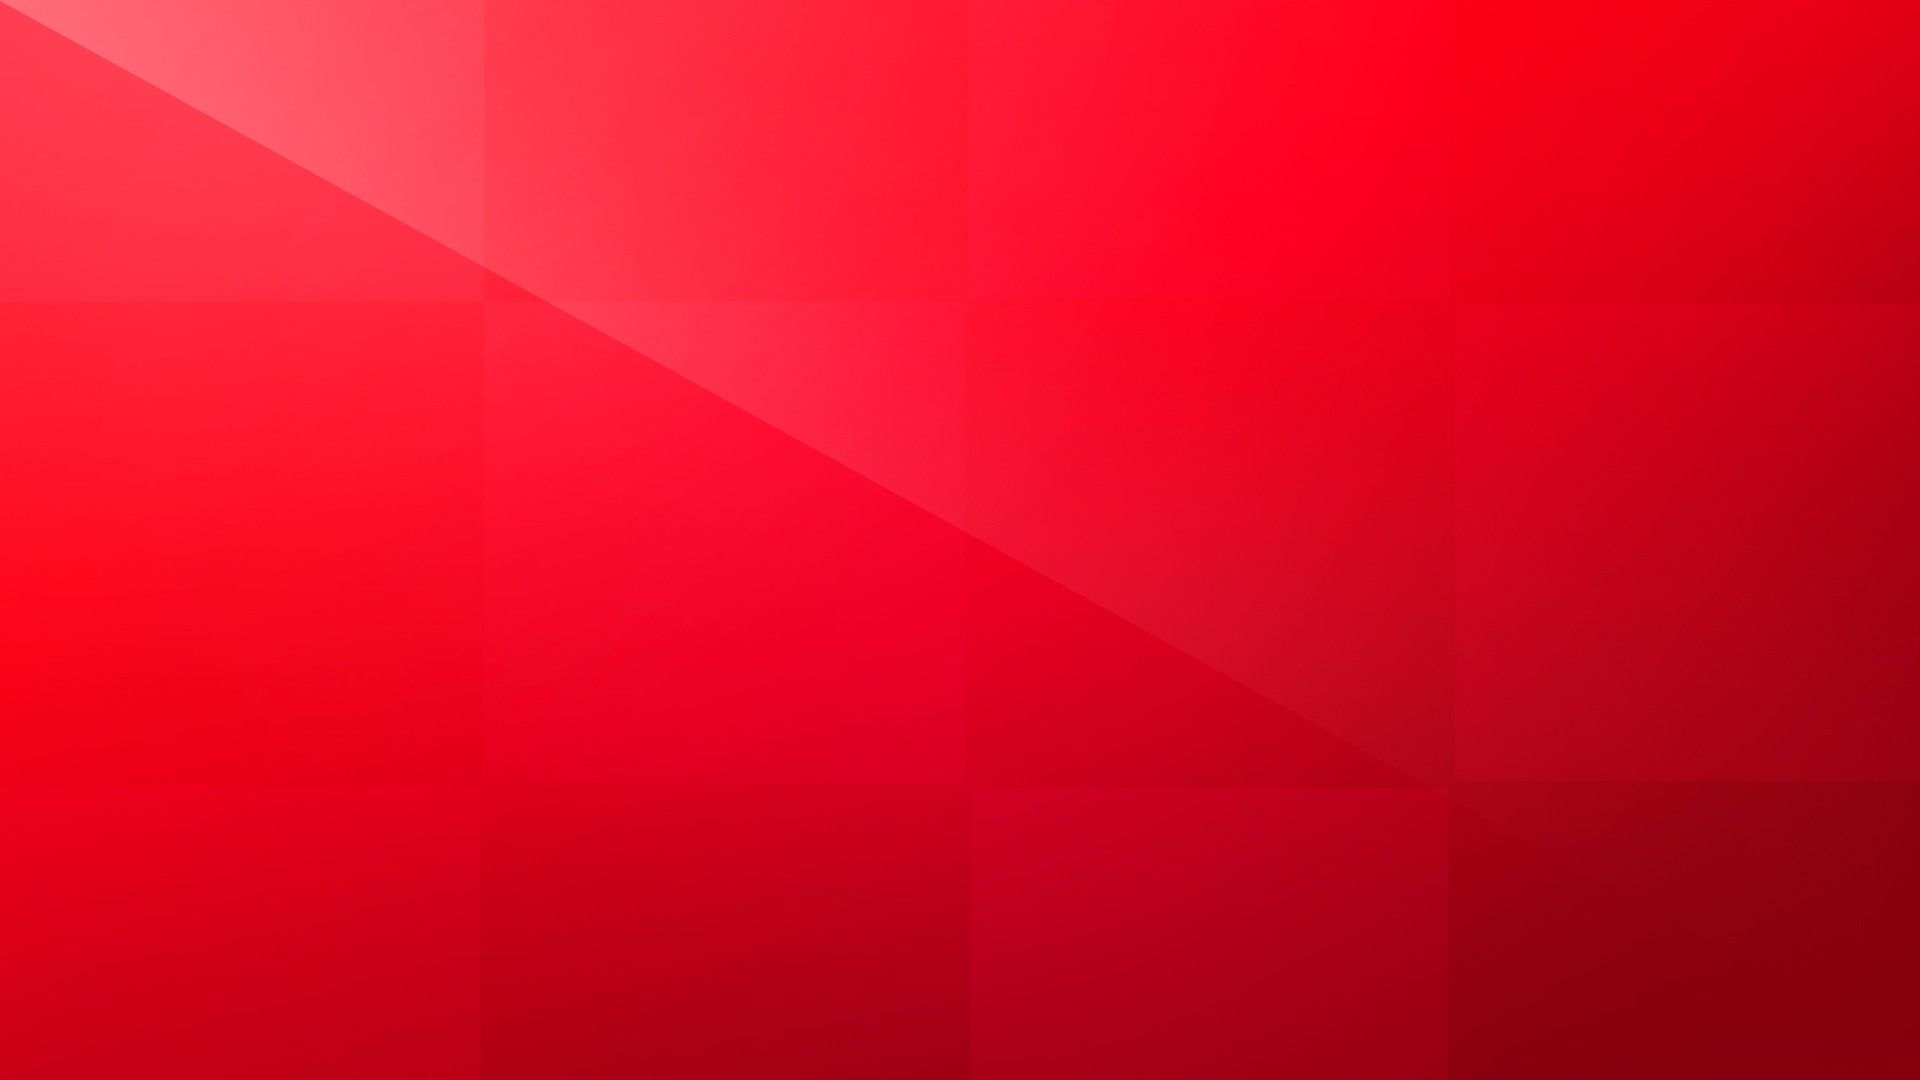 Red Wallpaper Full Hd Red Colour Wallpaper Colorful Wallpaper Red Wallpaper